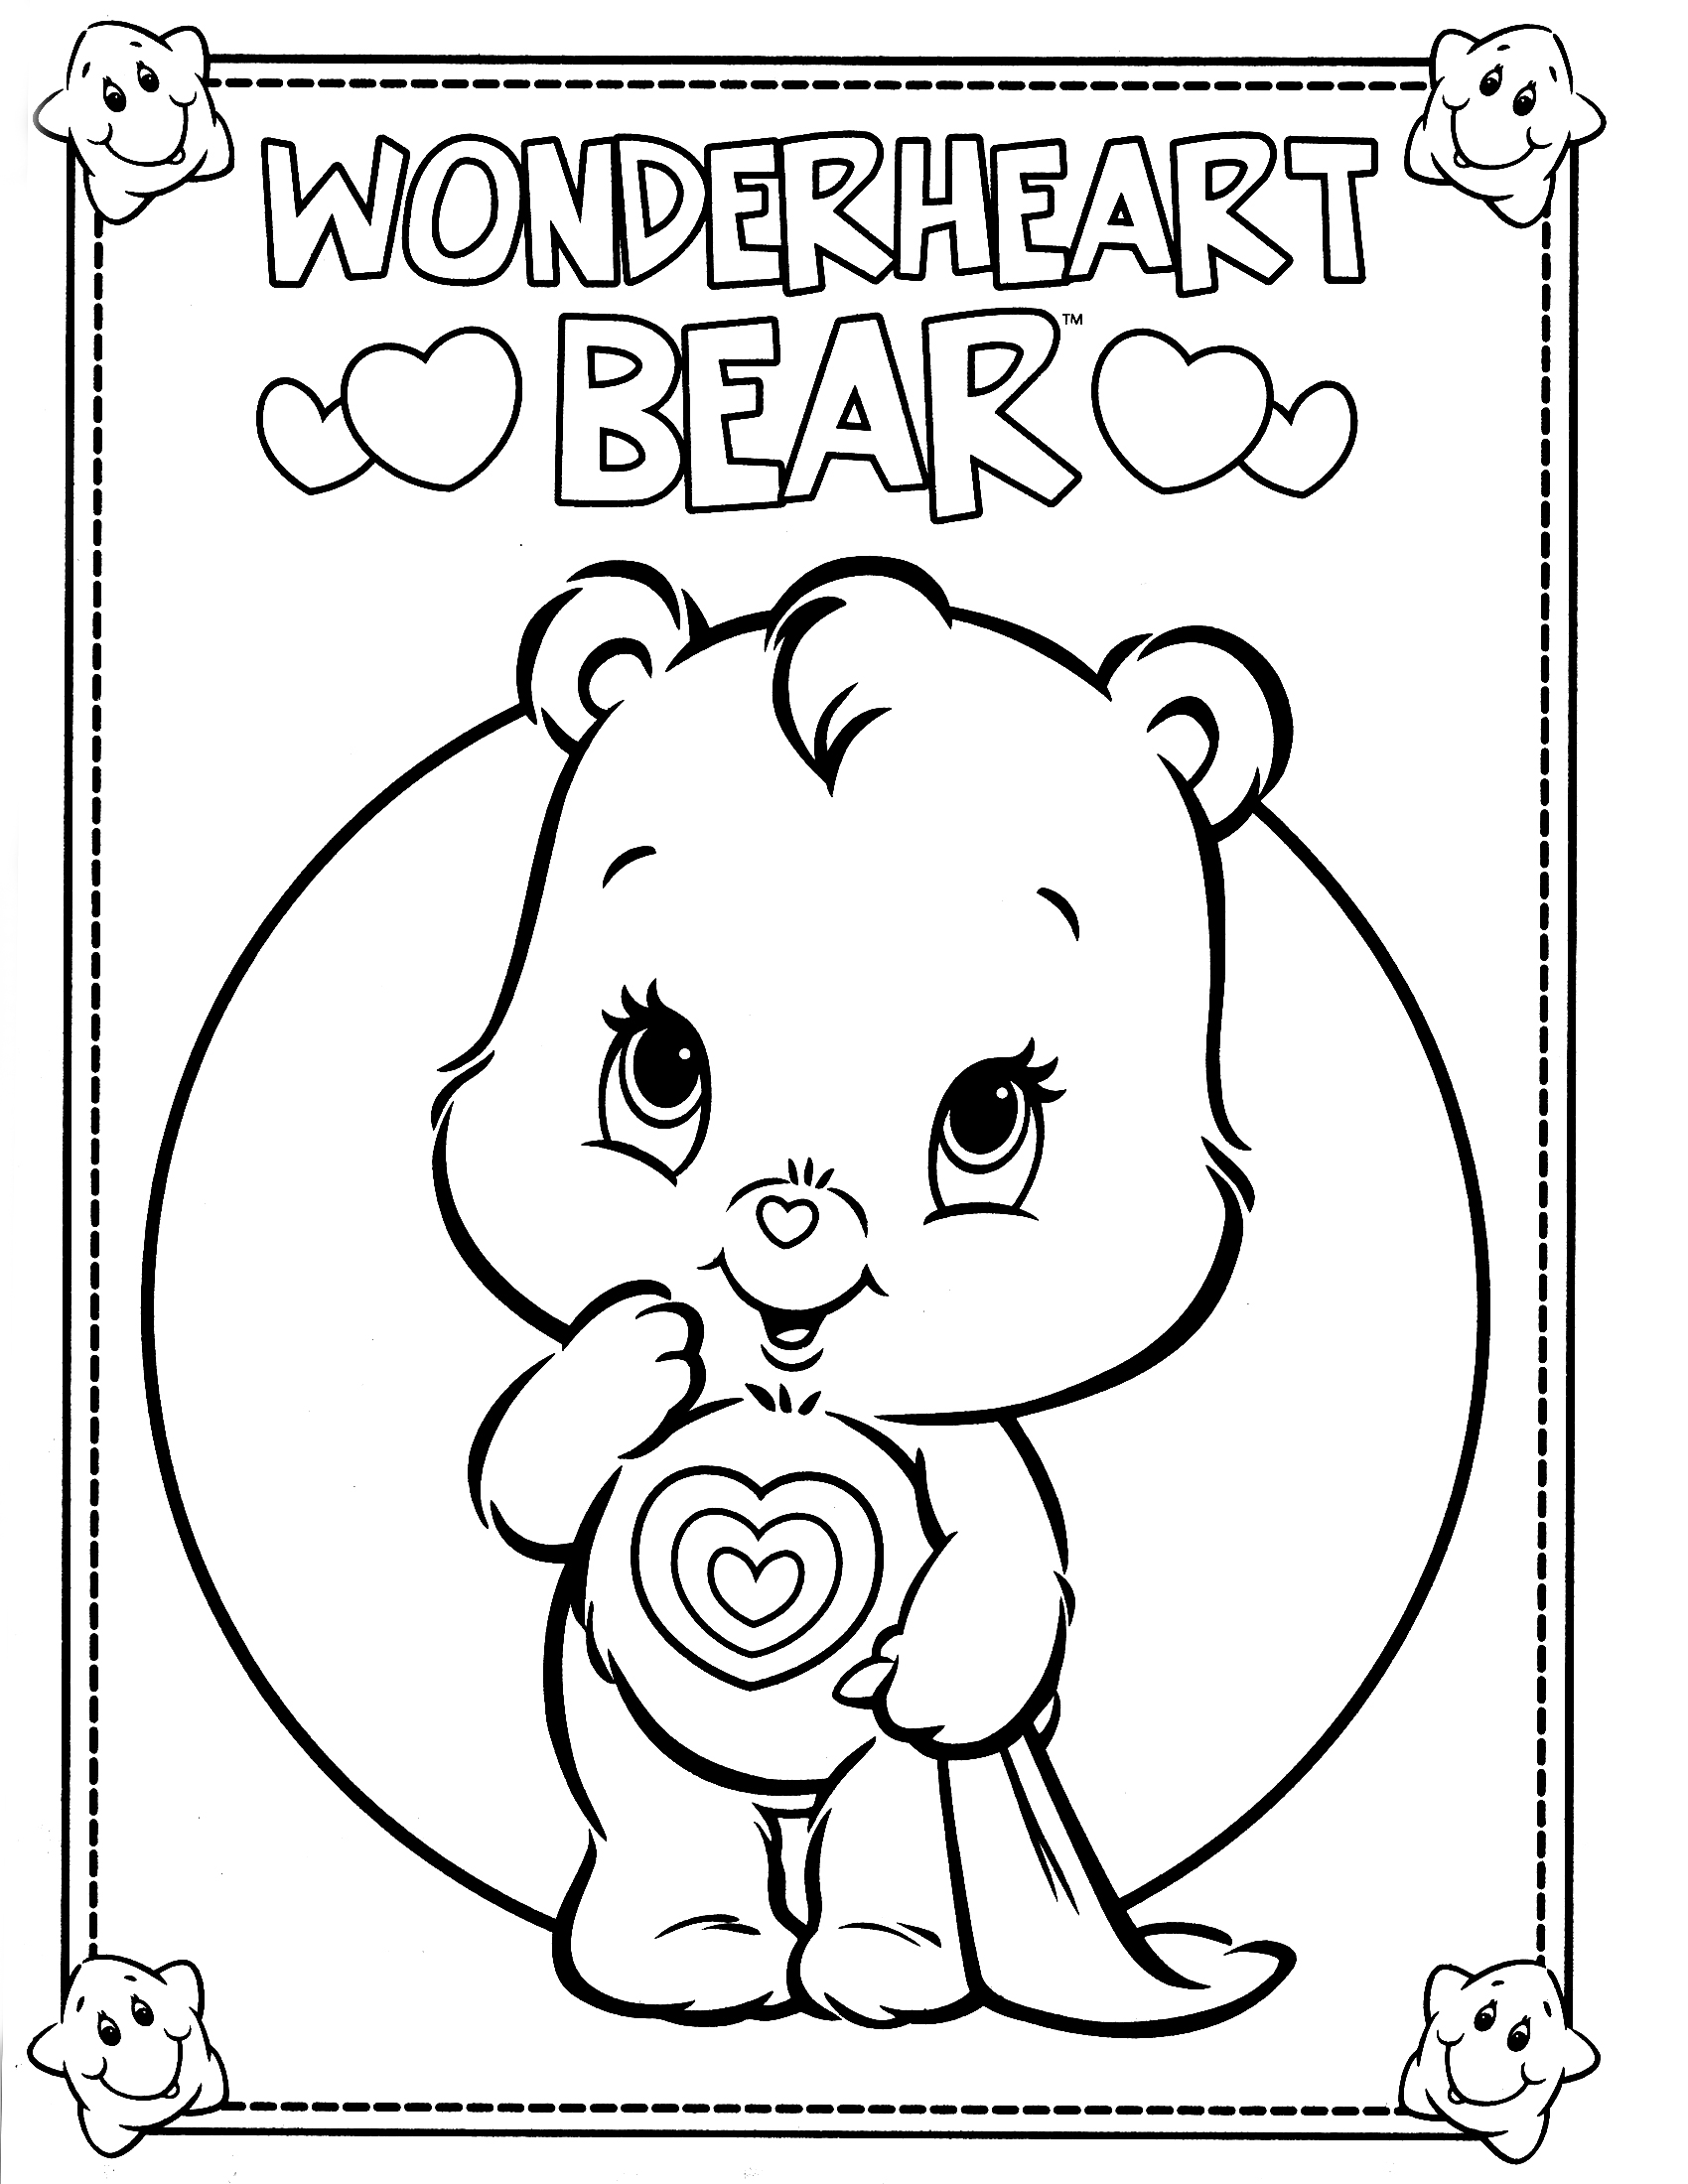 Cheer bear coloring pages download and print for free for Free bear coloring pages